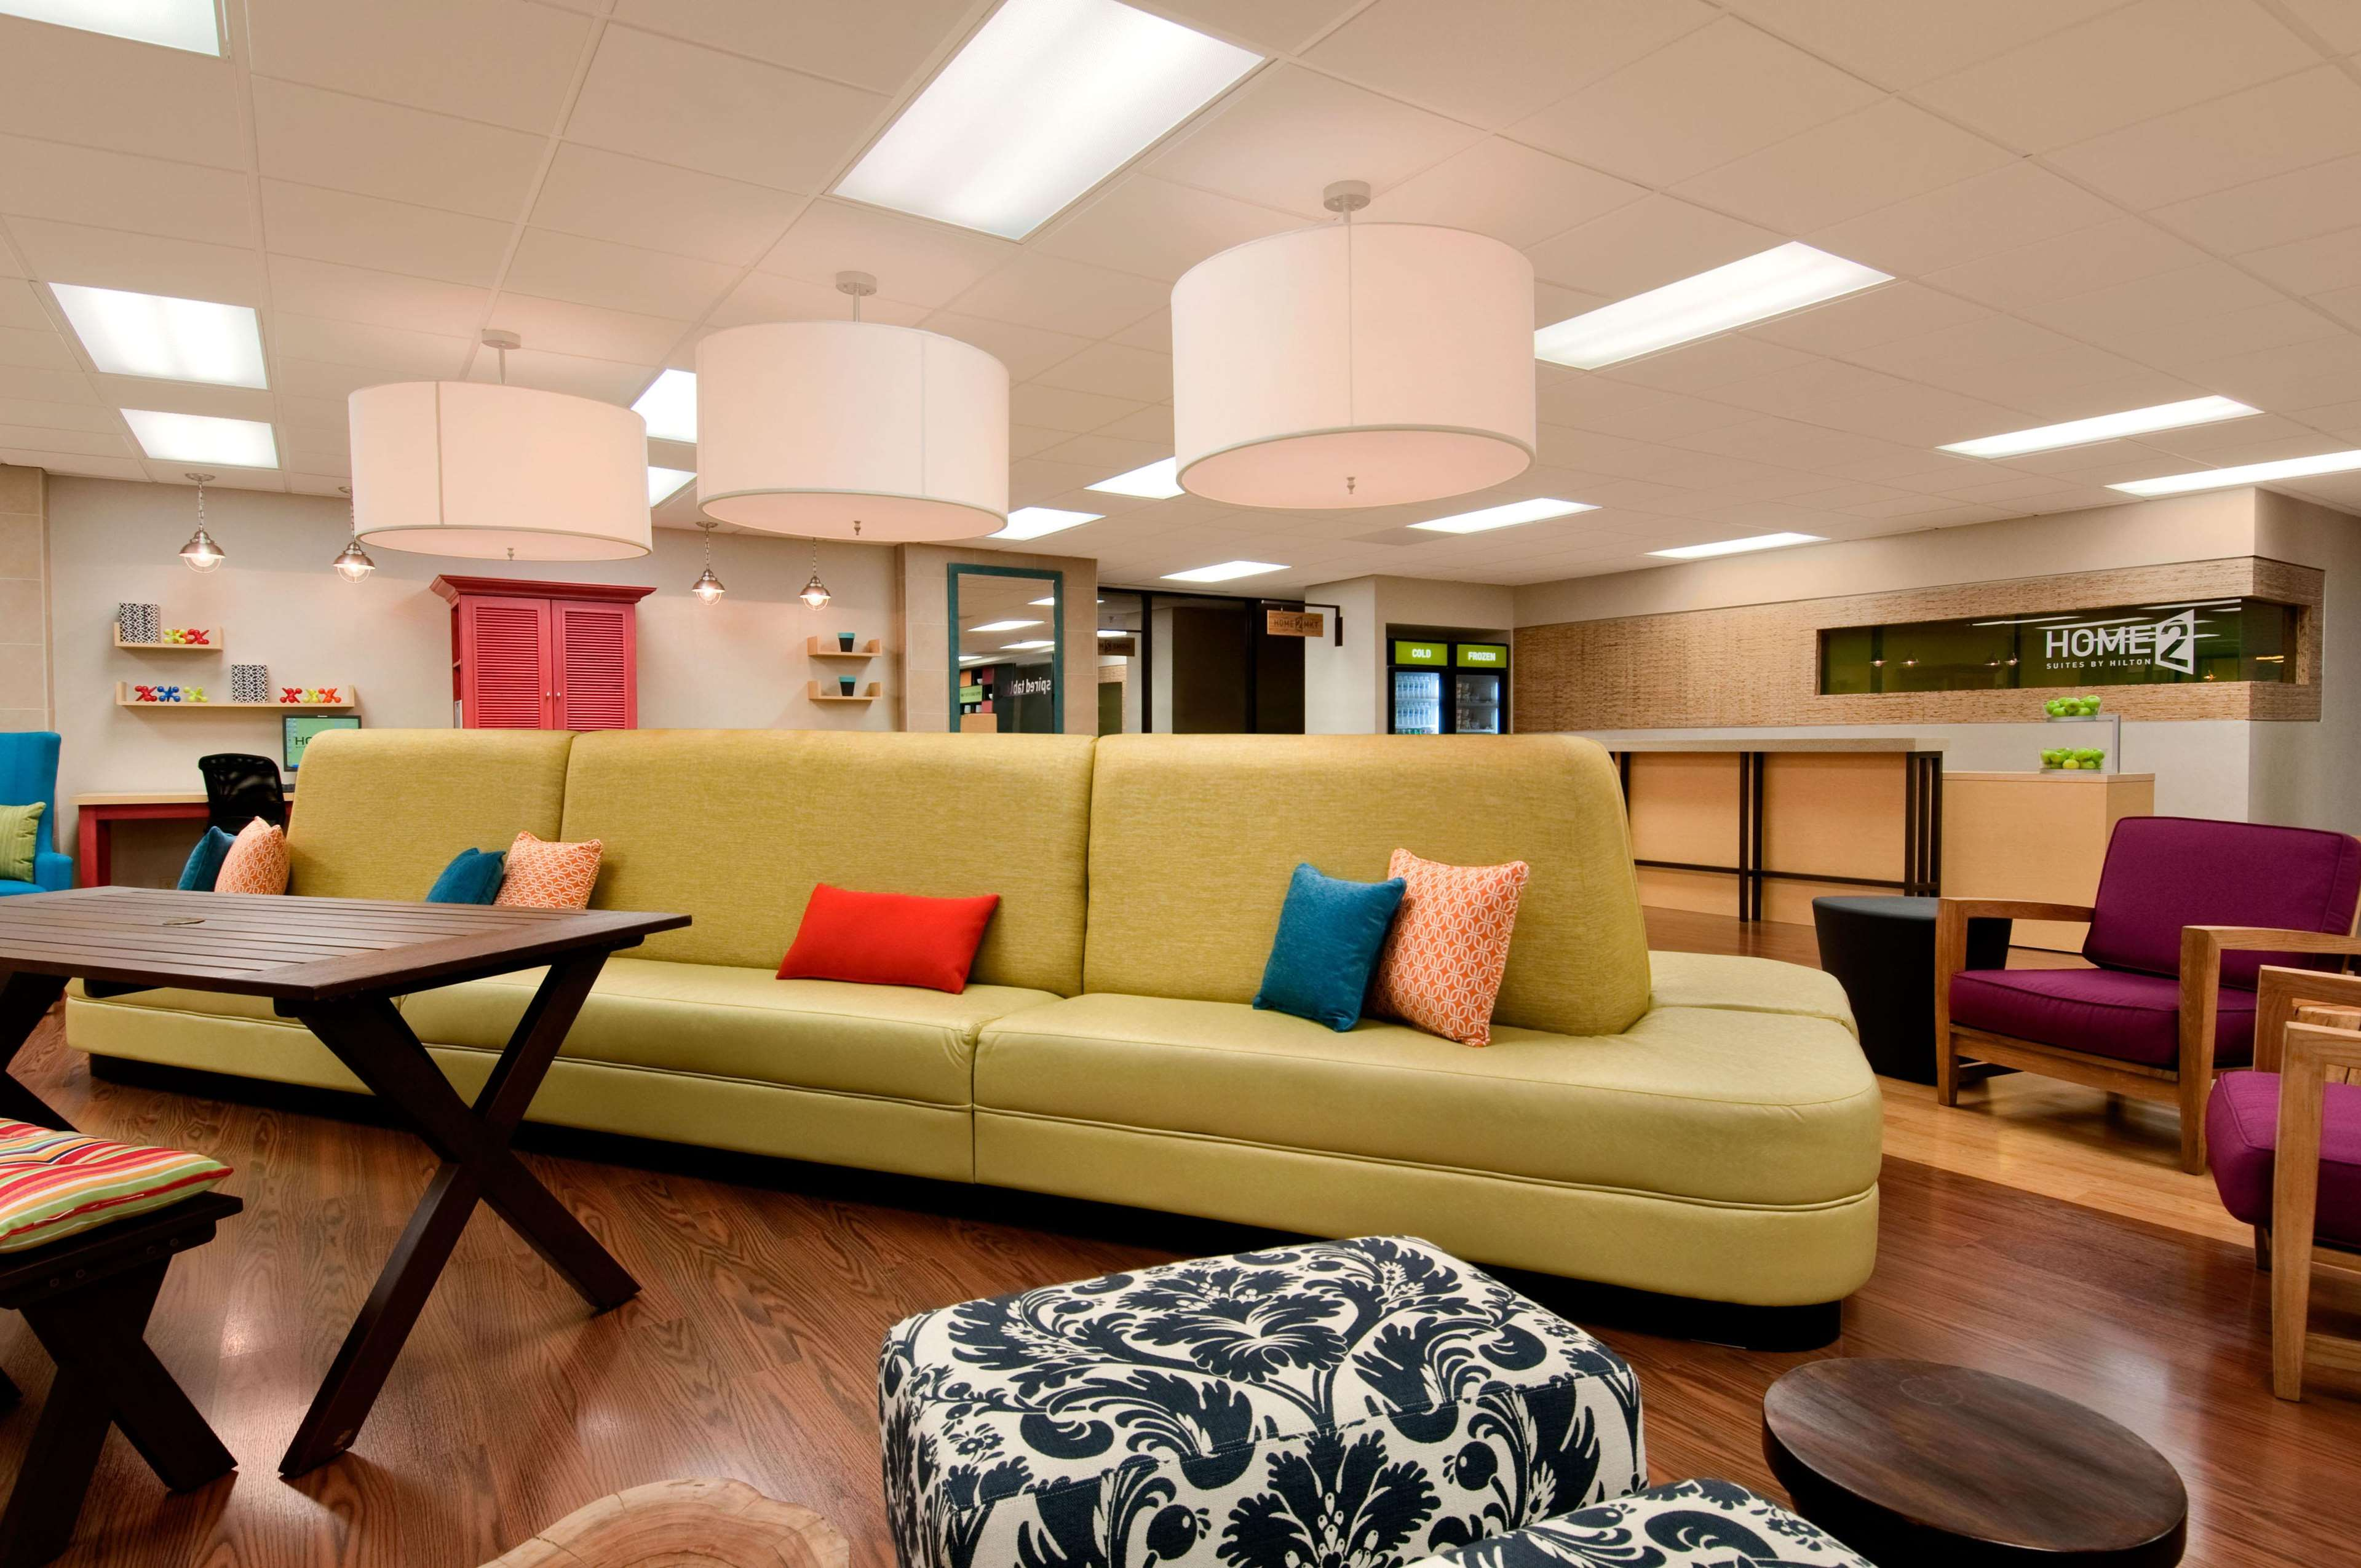 Home2 Suites By Hilton Orlando Airport image 0